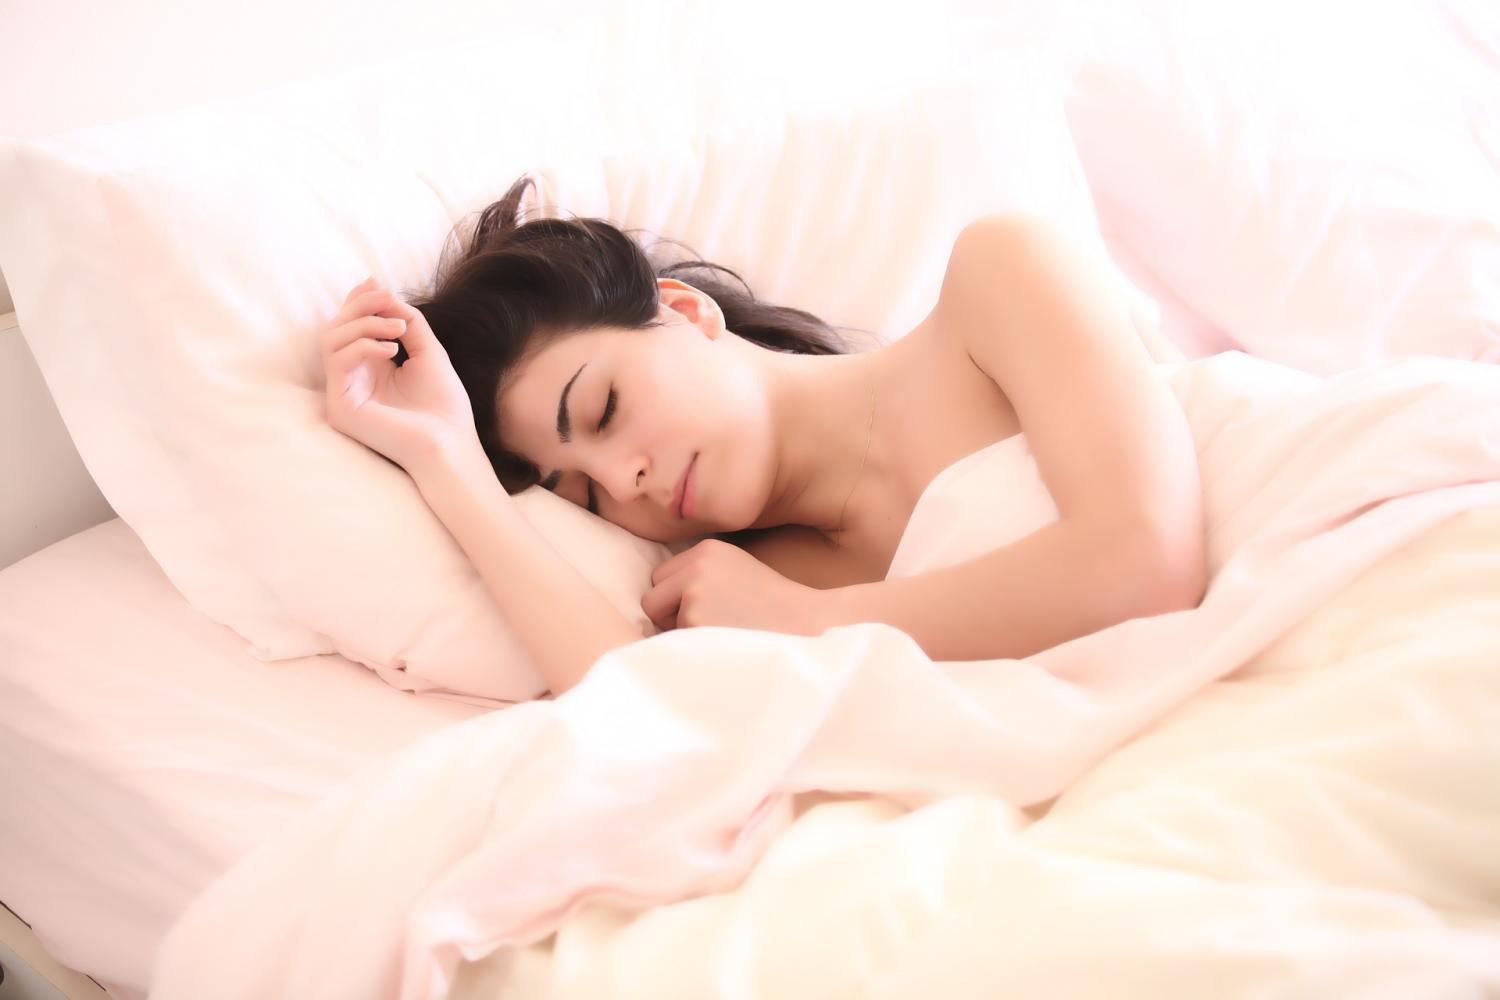 Having a Sense of Purpose Helps People Sleep Better